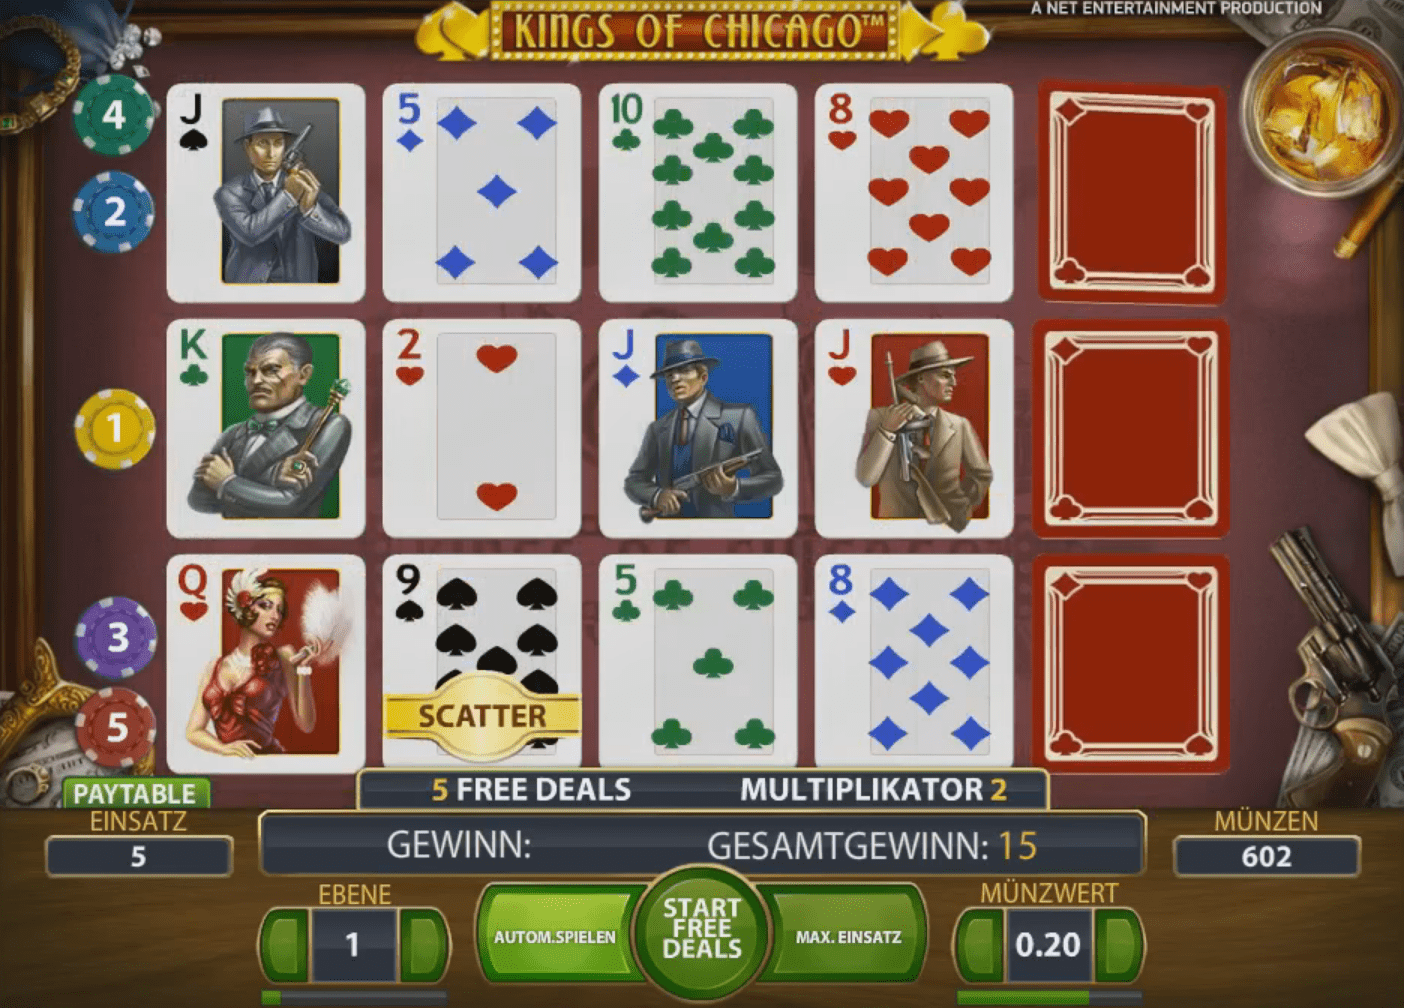 NetEnt mobile slots - Kings of Chicago